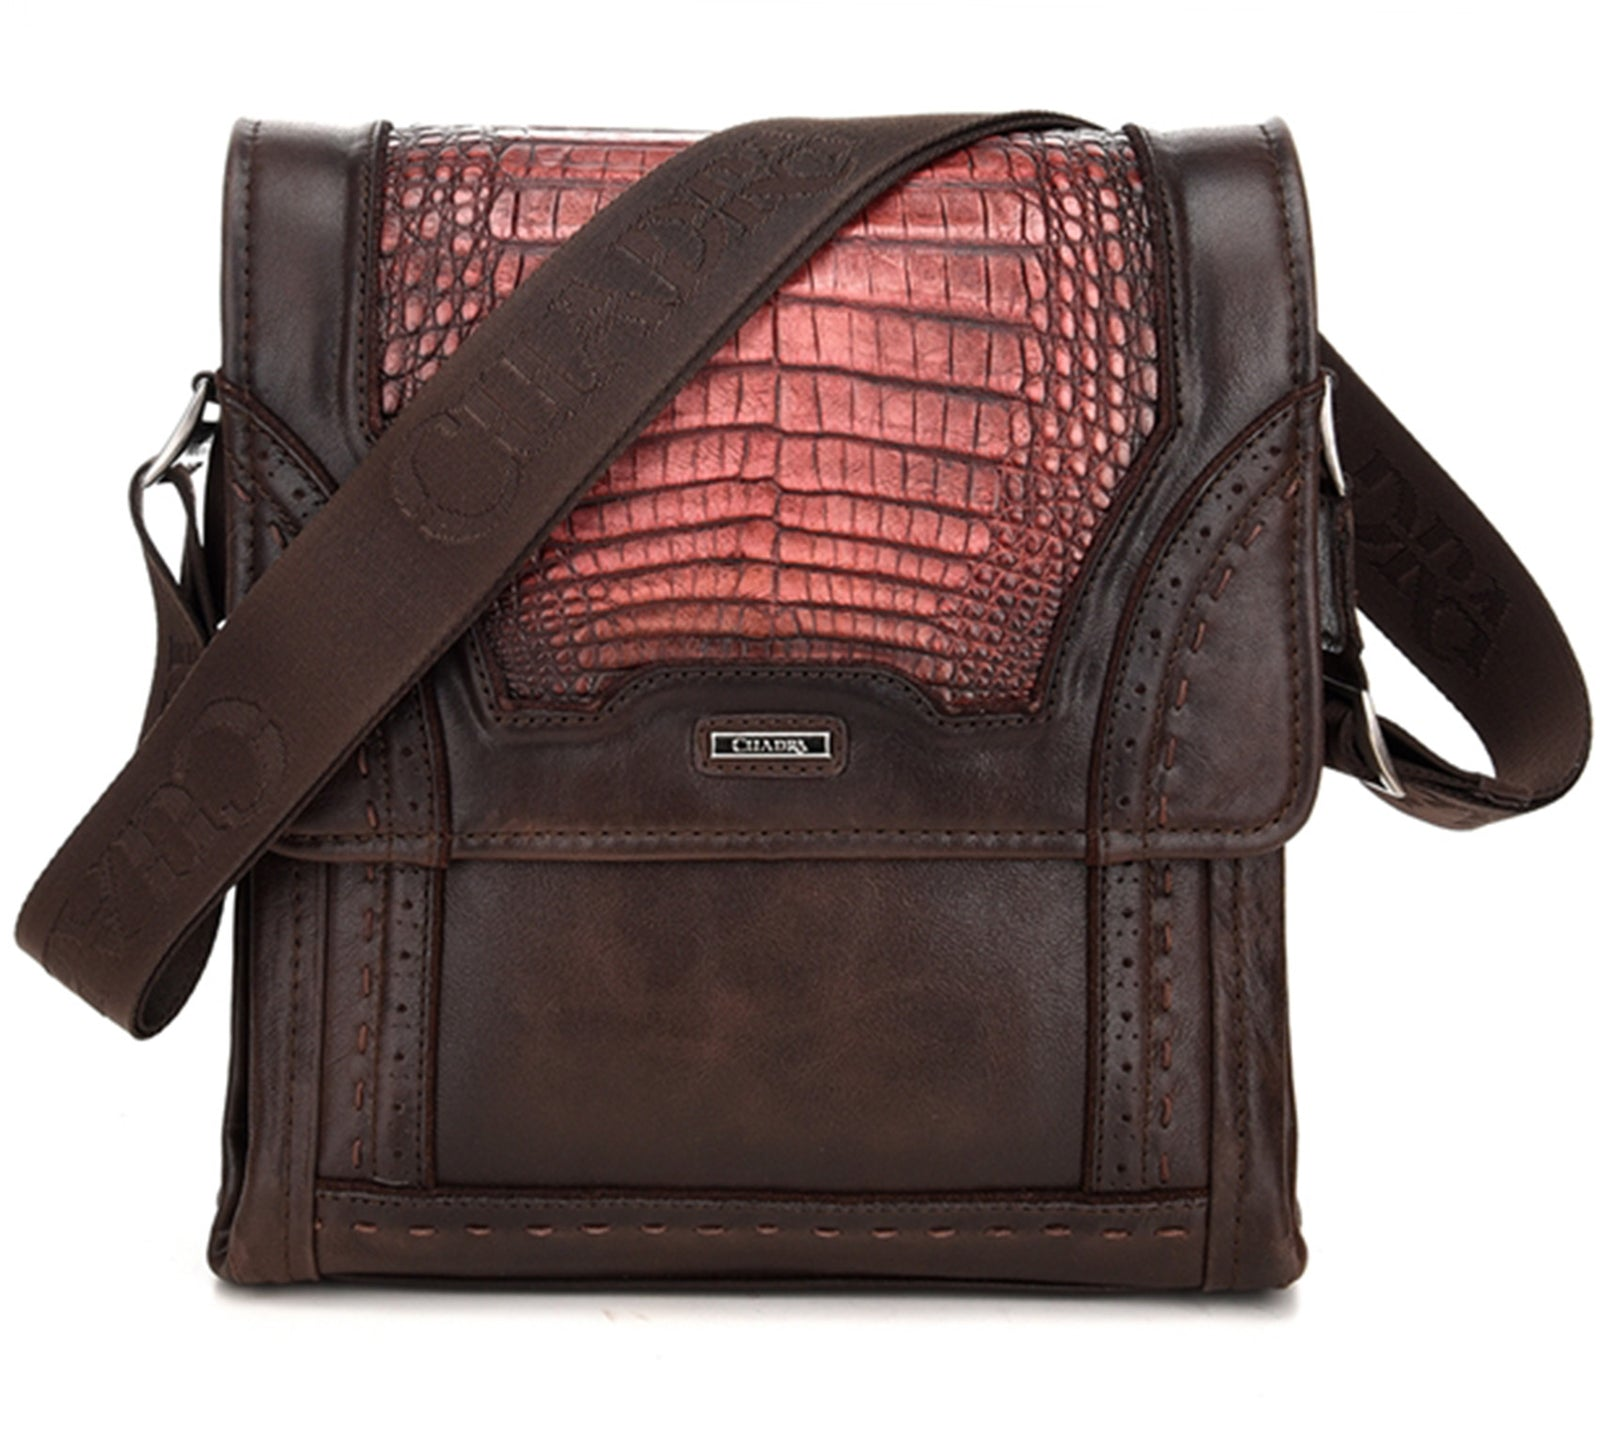 Cuadra Lumber Whisky Caiman Belly Messenger Bag